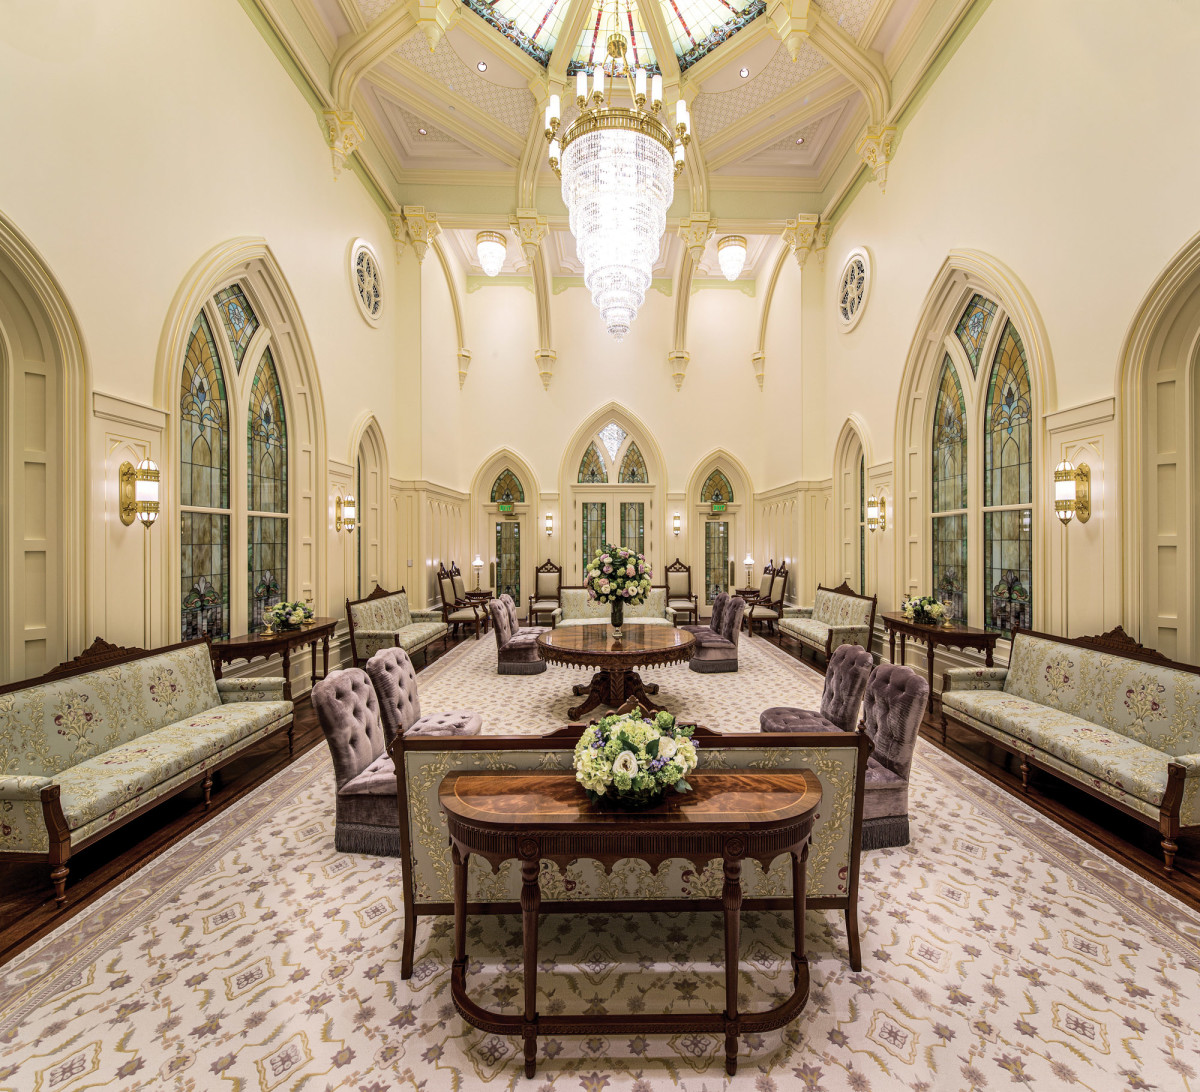 Gothic Revival dining room